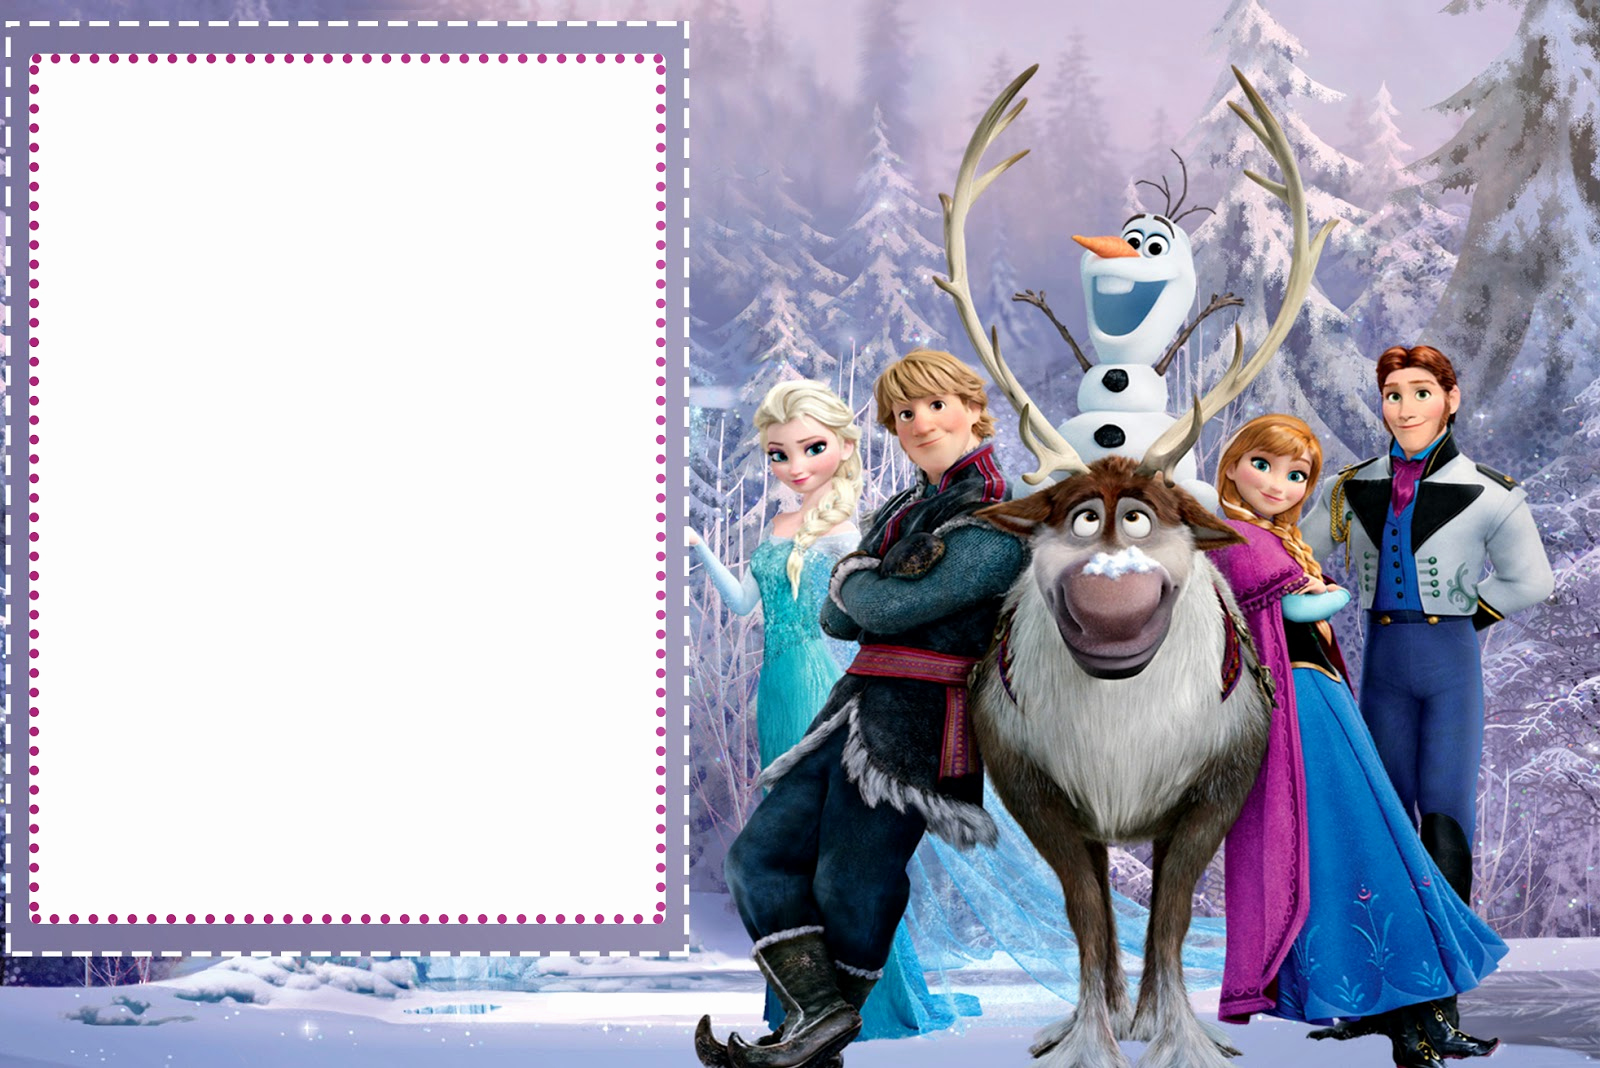 Frozen Invitation Template Free Download Inspirational Frozen Free Printable Cards or Party Invitations Oh My